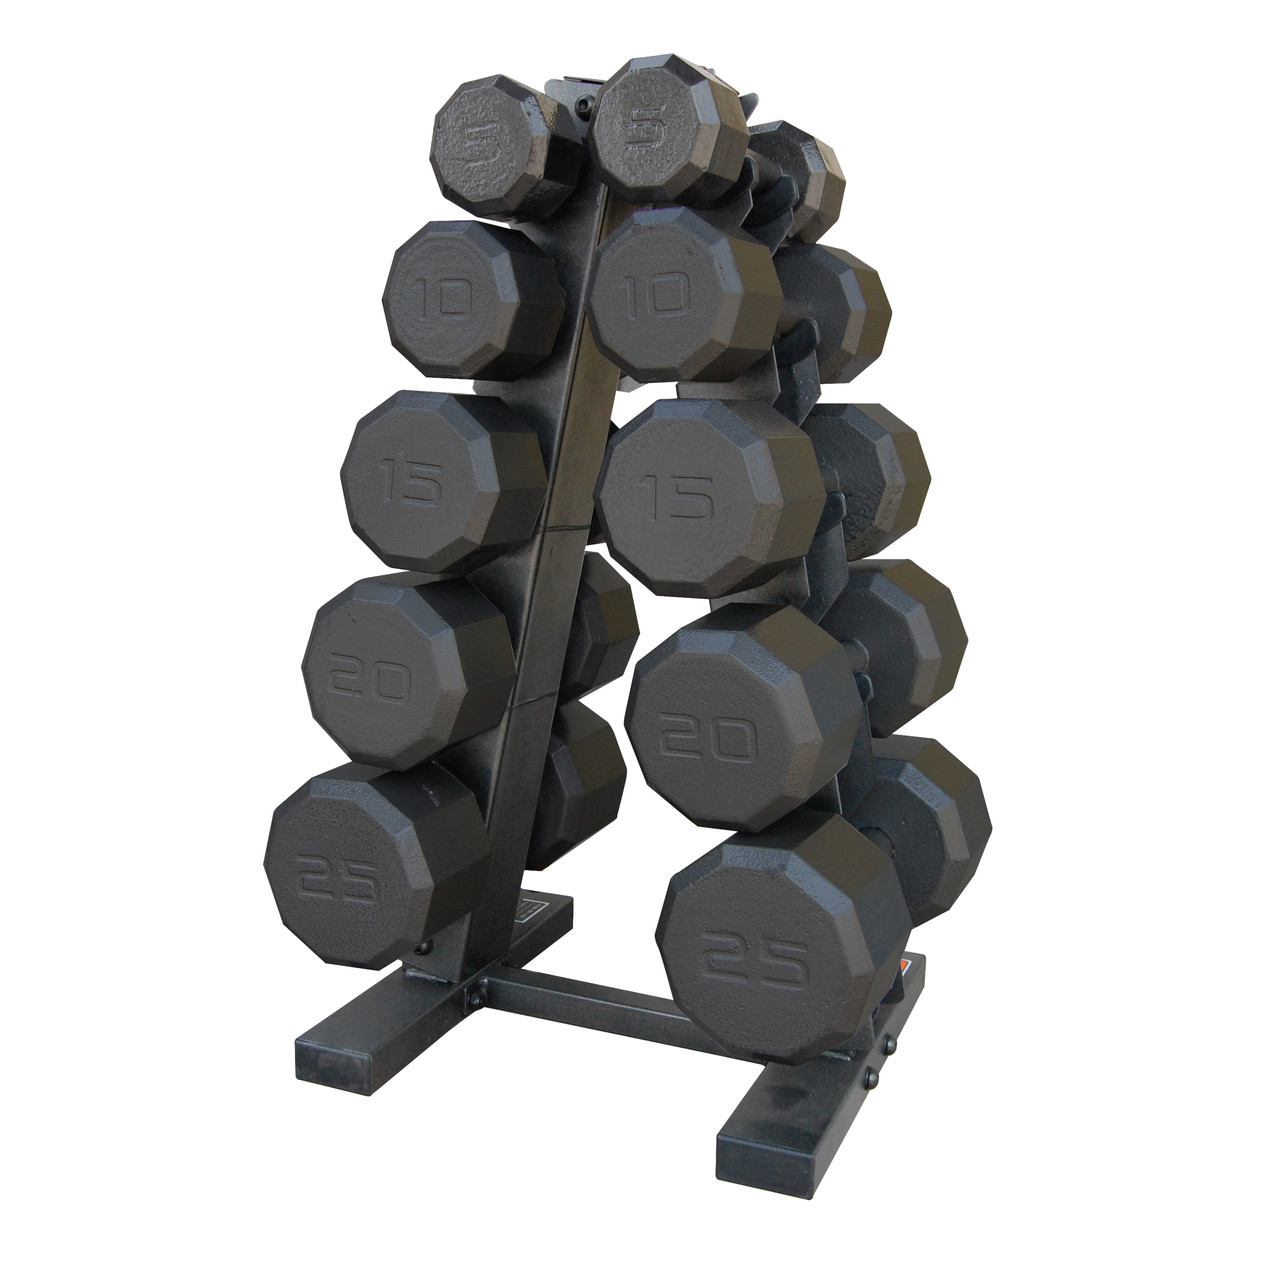 8d83eca428e CAP 150 lb Dumbbell Set with Rack (SDBS-150)